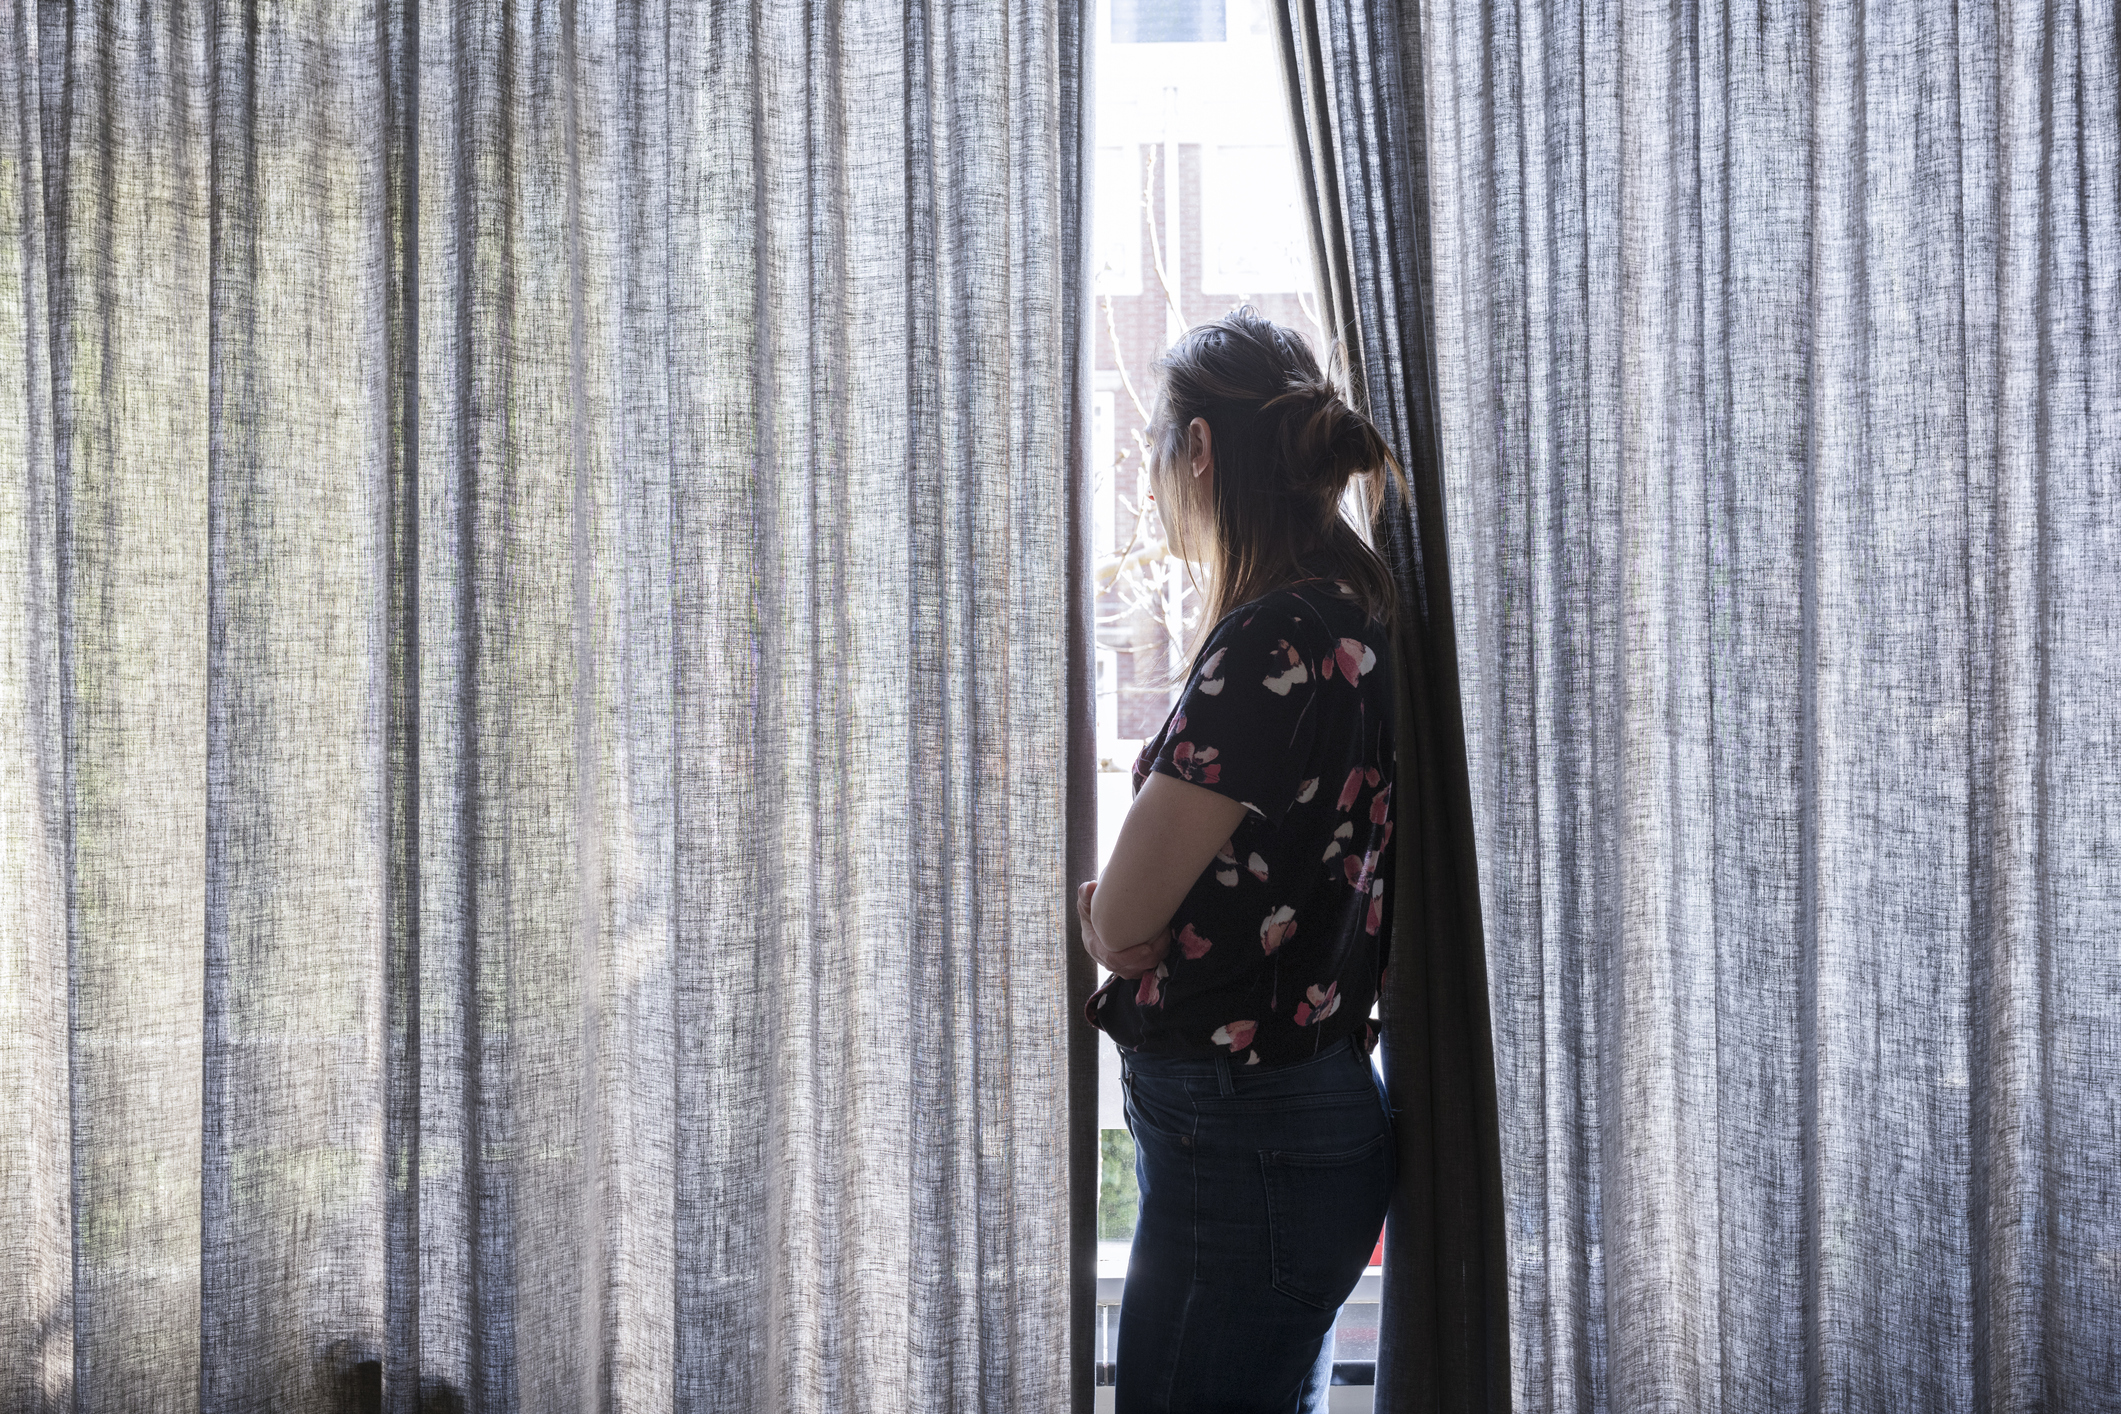 Woman looking out window (Getty Images)